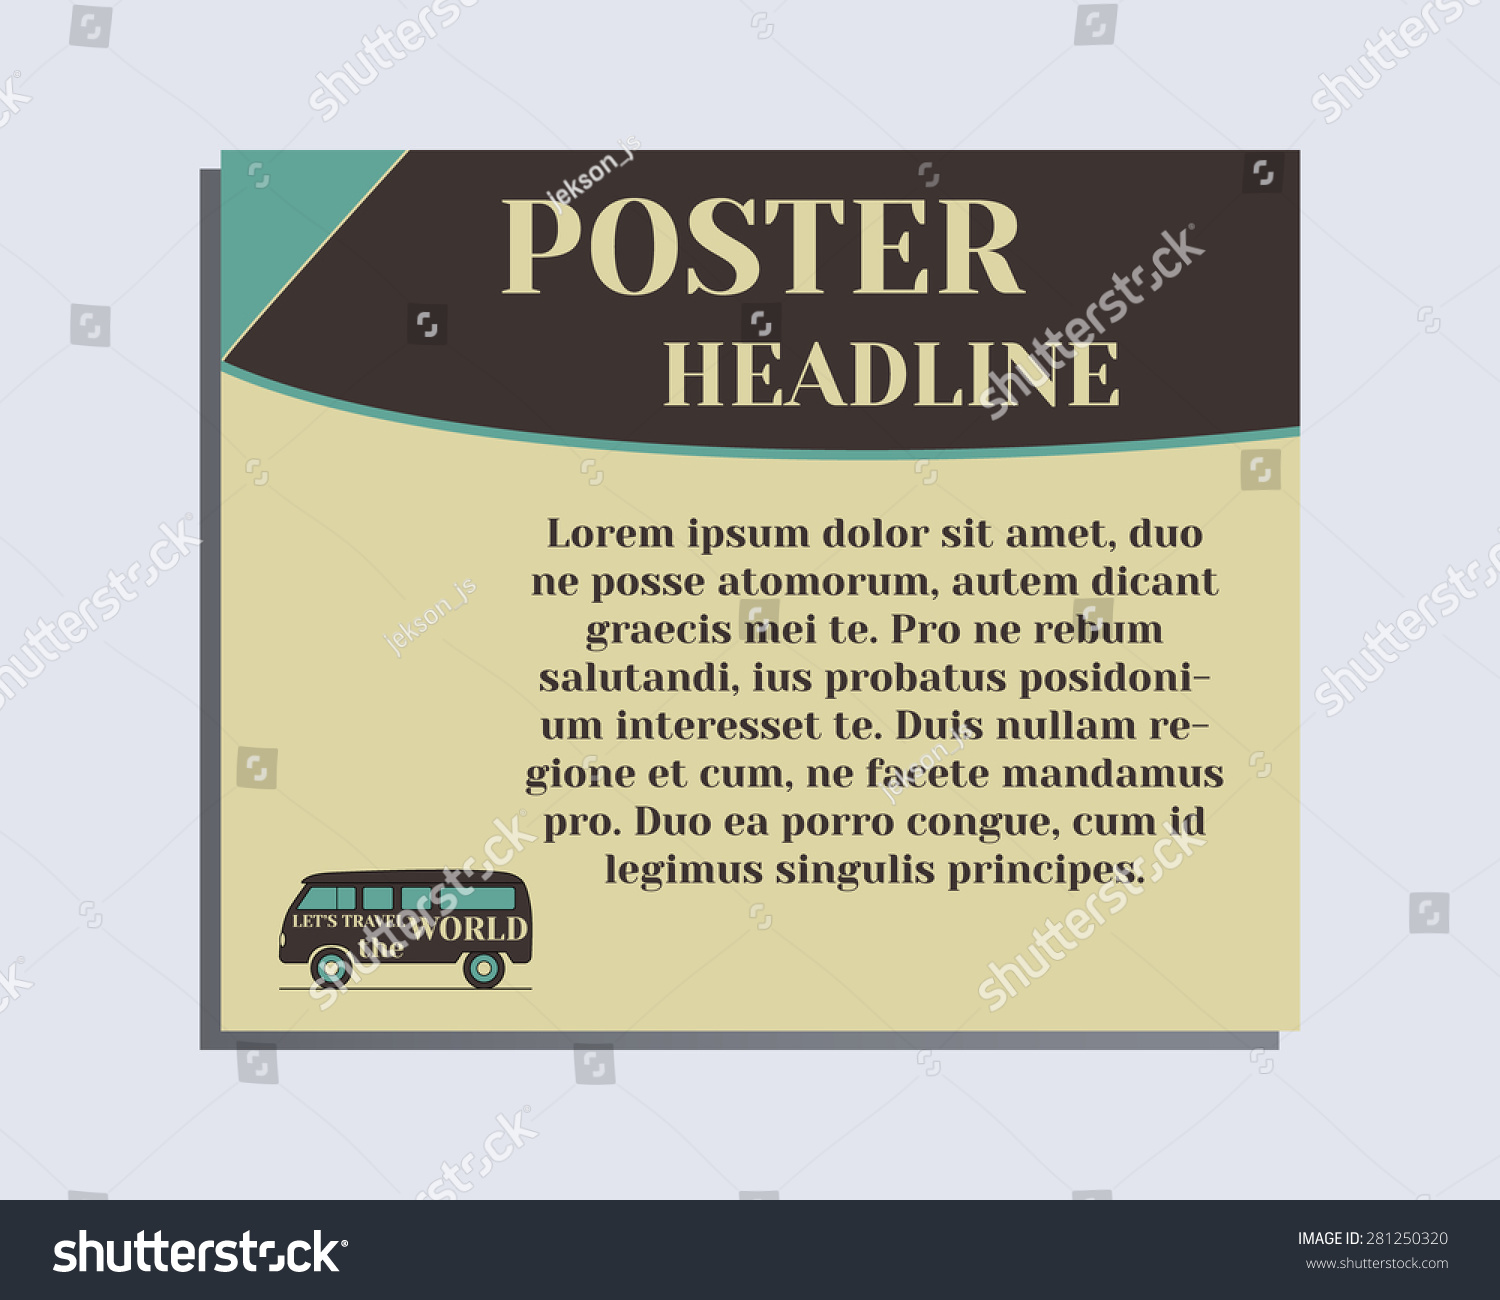 Poster design layout - Travel And Camping Poster Design Layout Template Rv Park And Campground Triangle Abstract Style